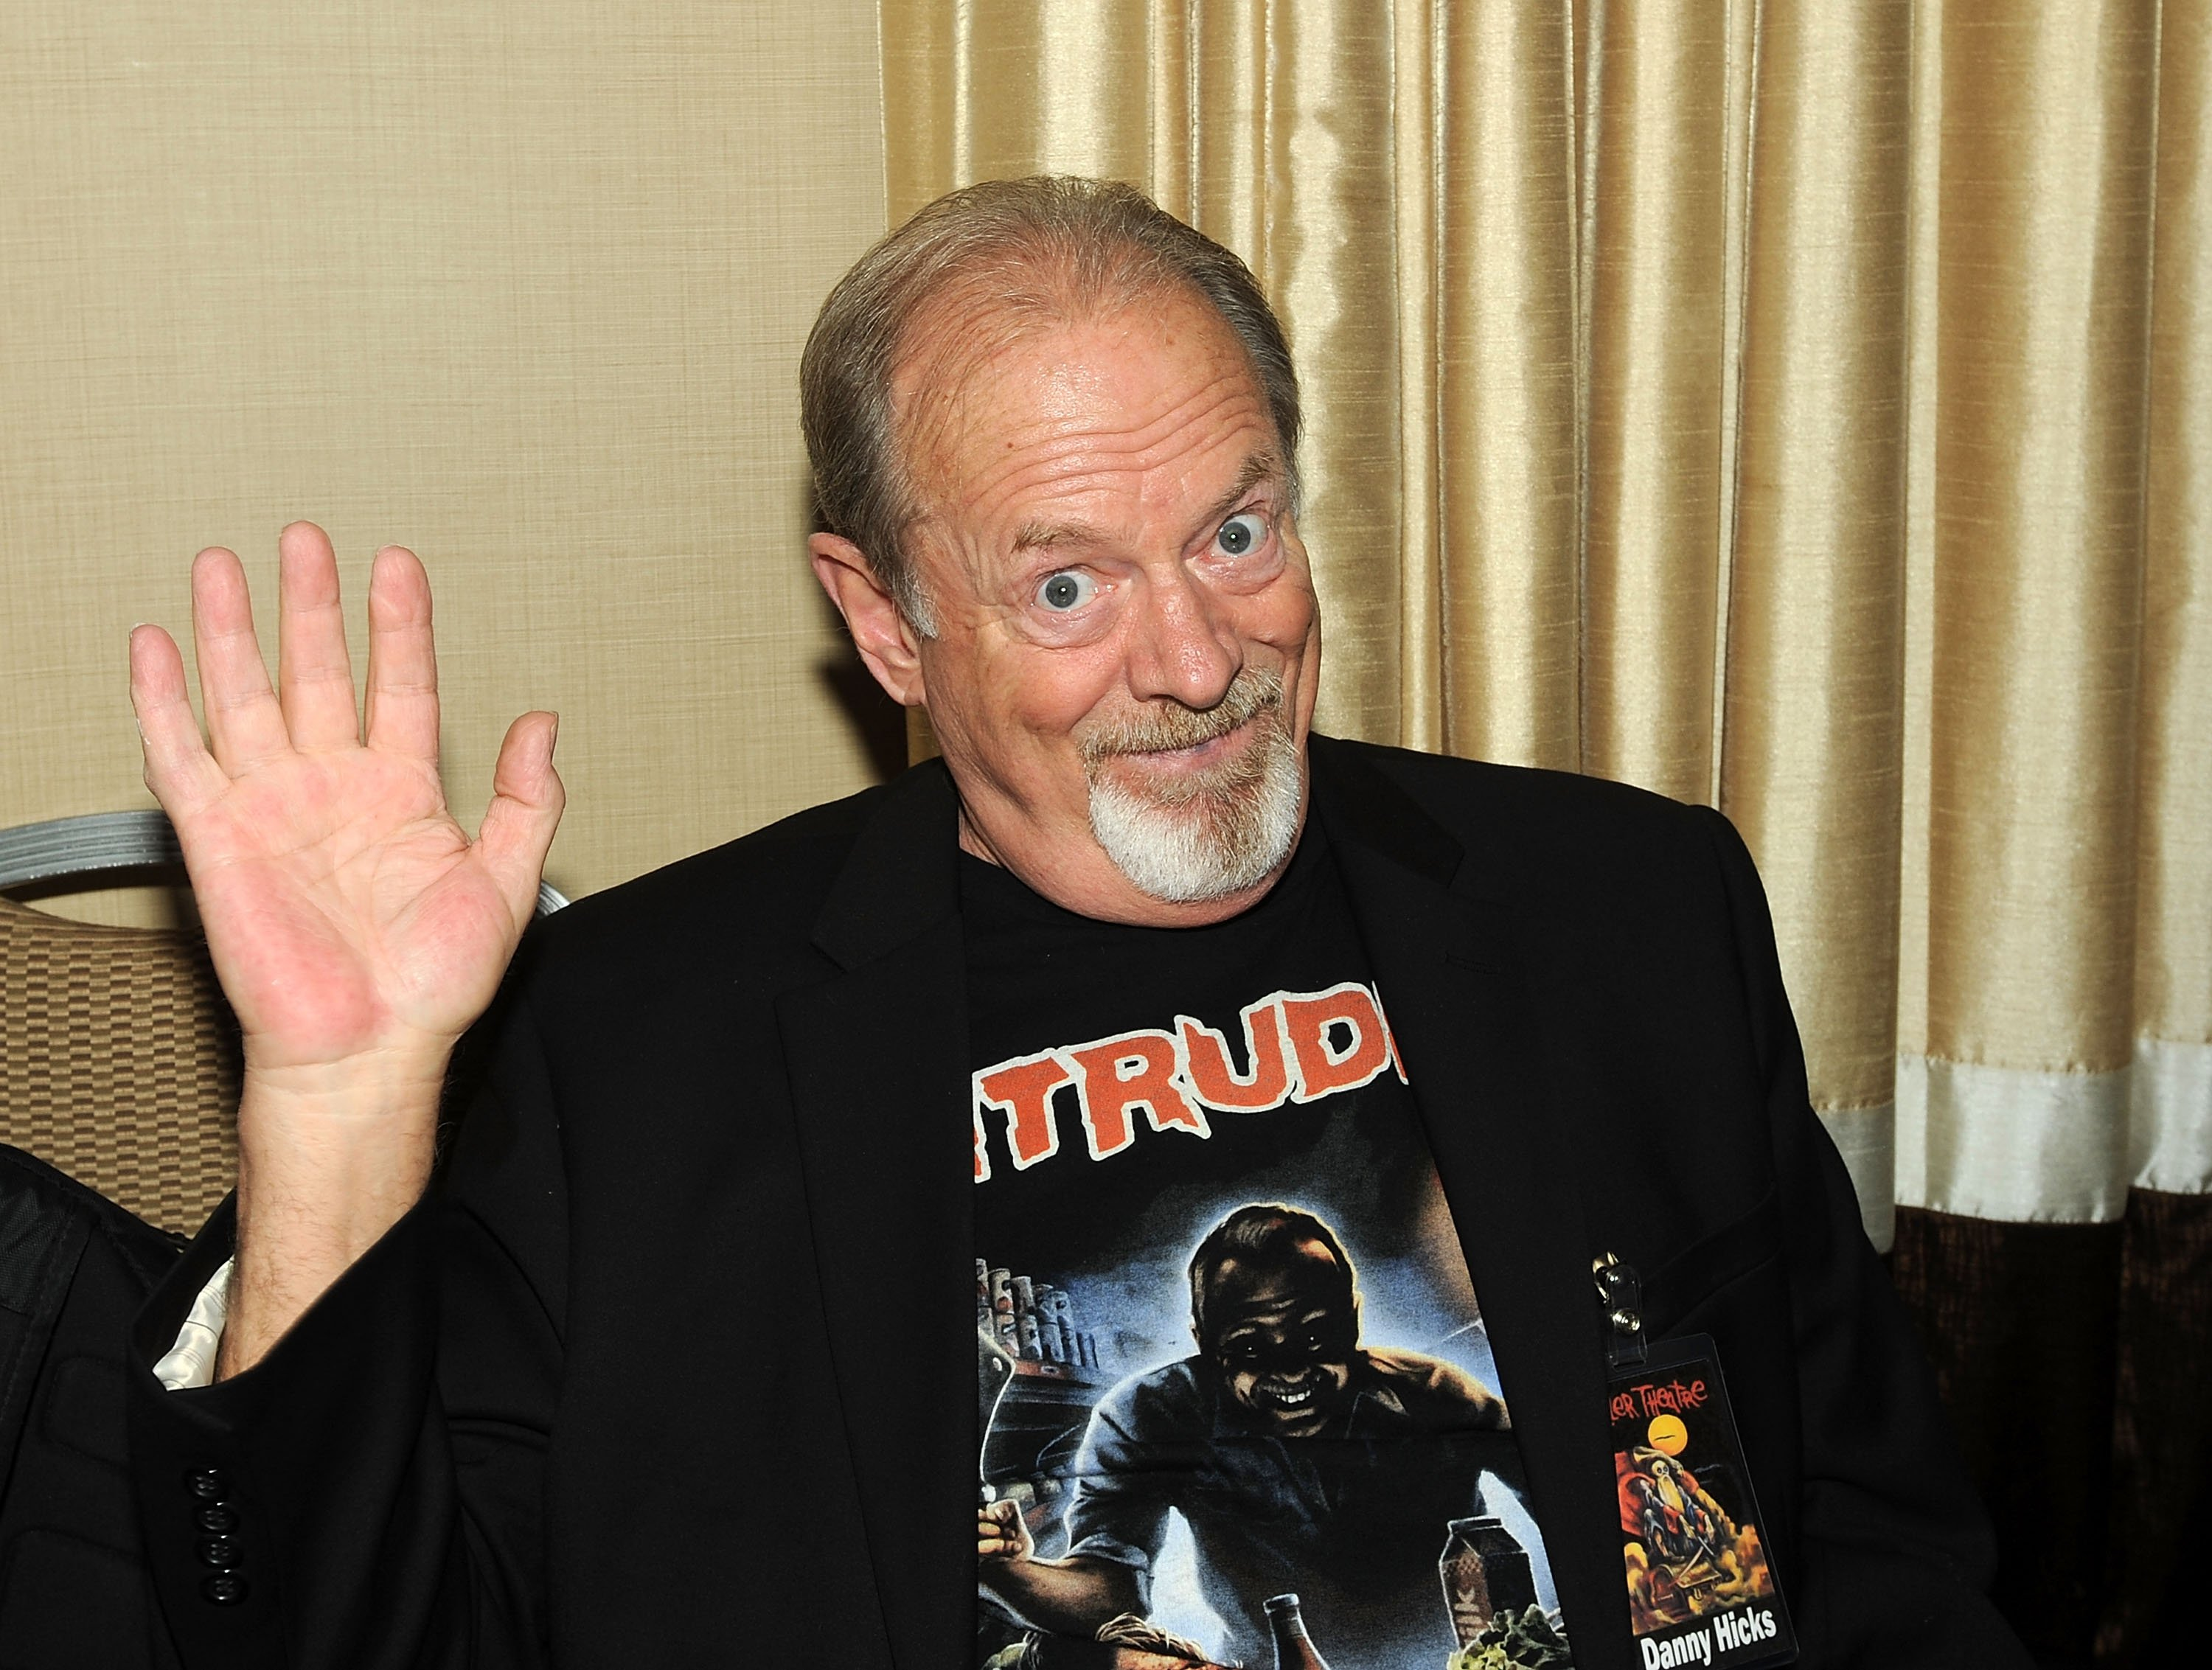 Danny Hicks attends the Chiller Theater Expo on April 22, 2016, in Parsippany, New Jersey.   Source: Getty Images.